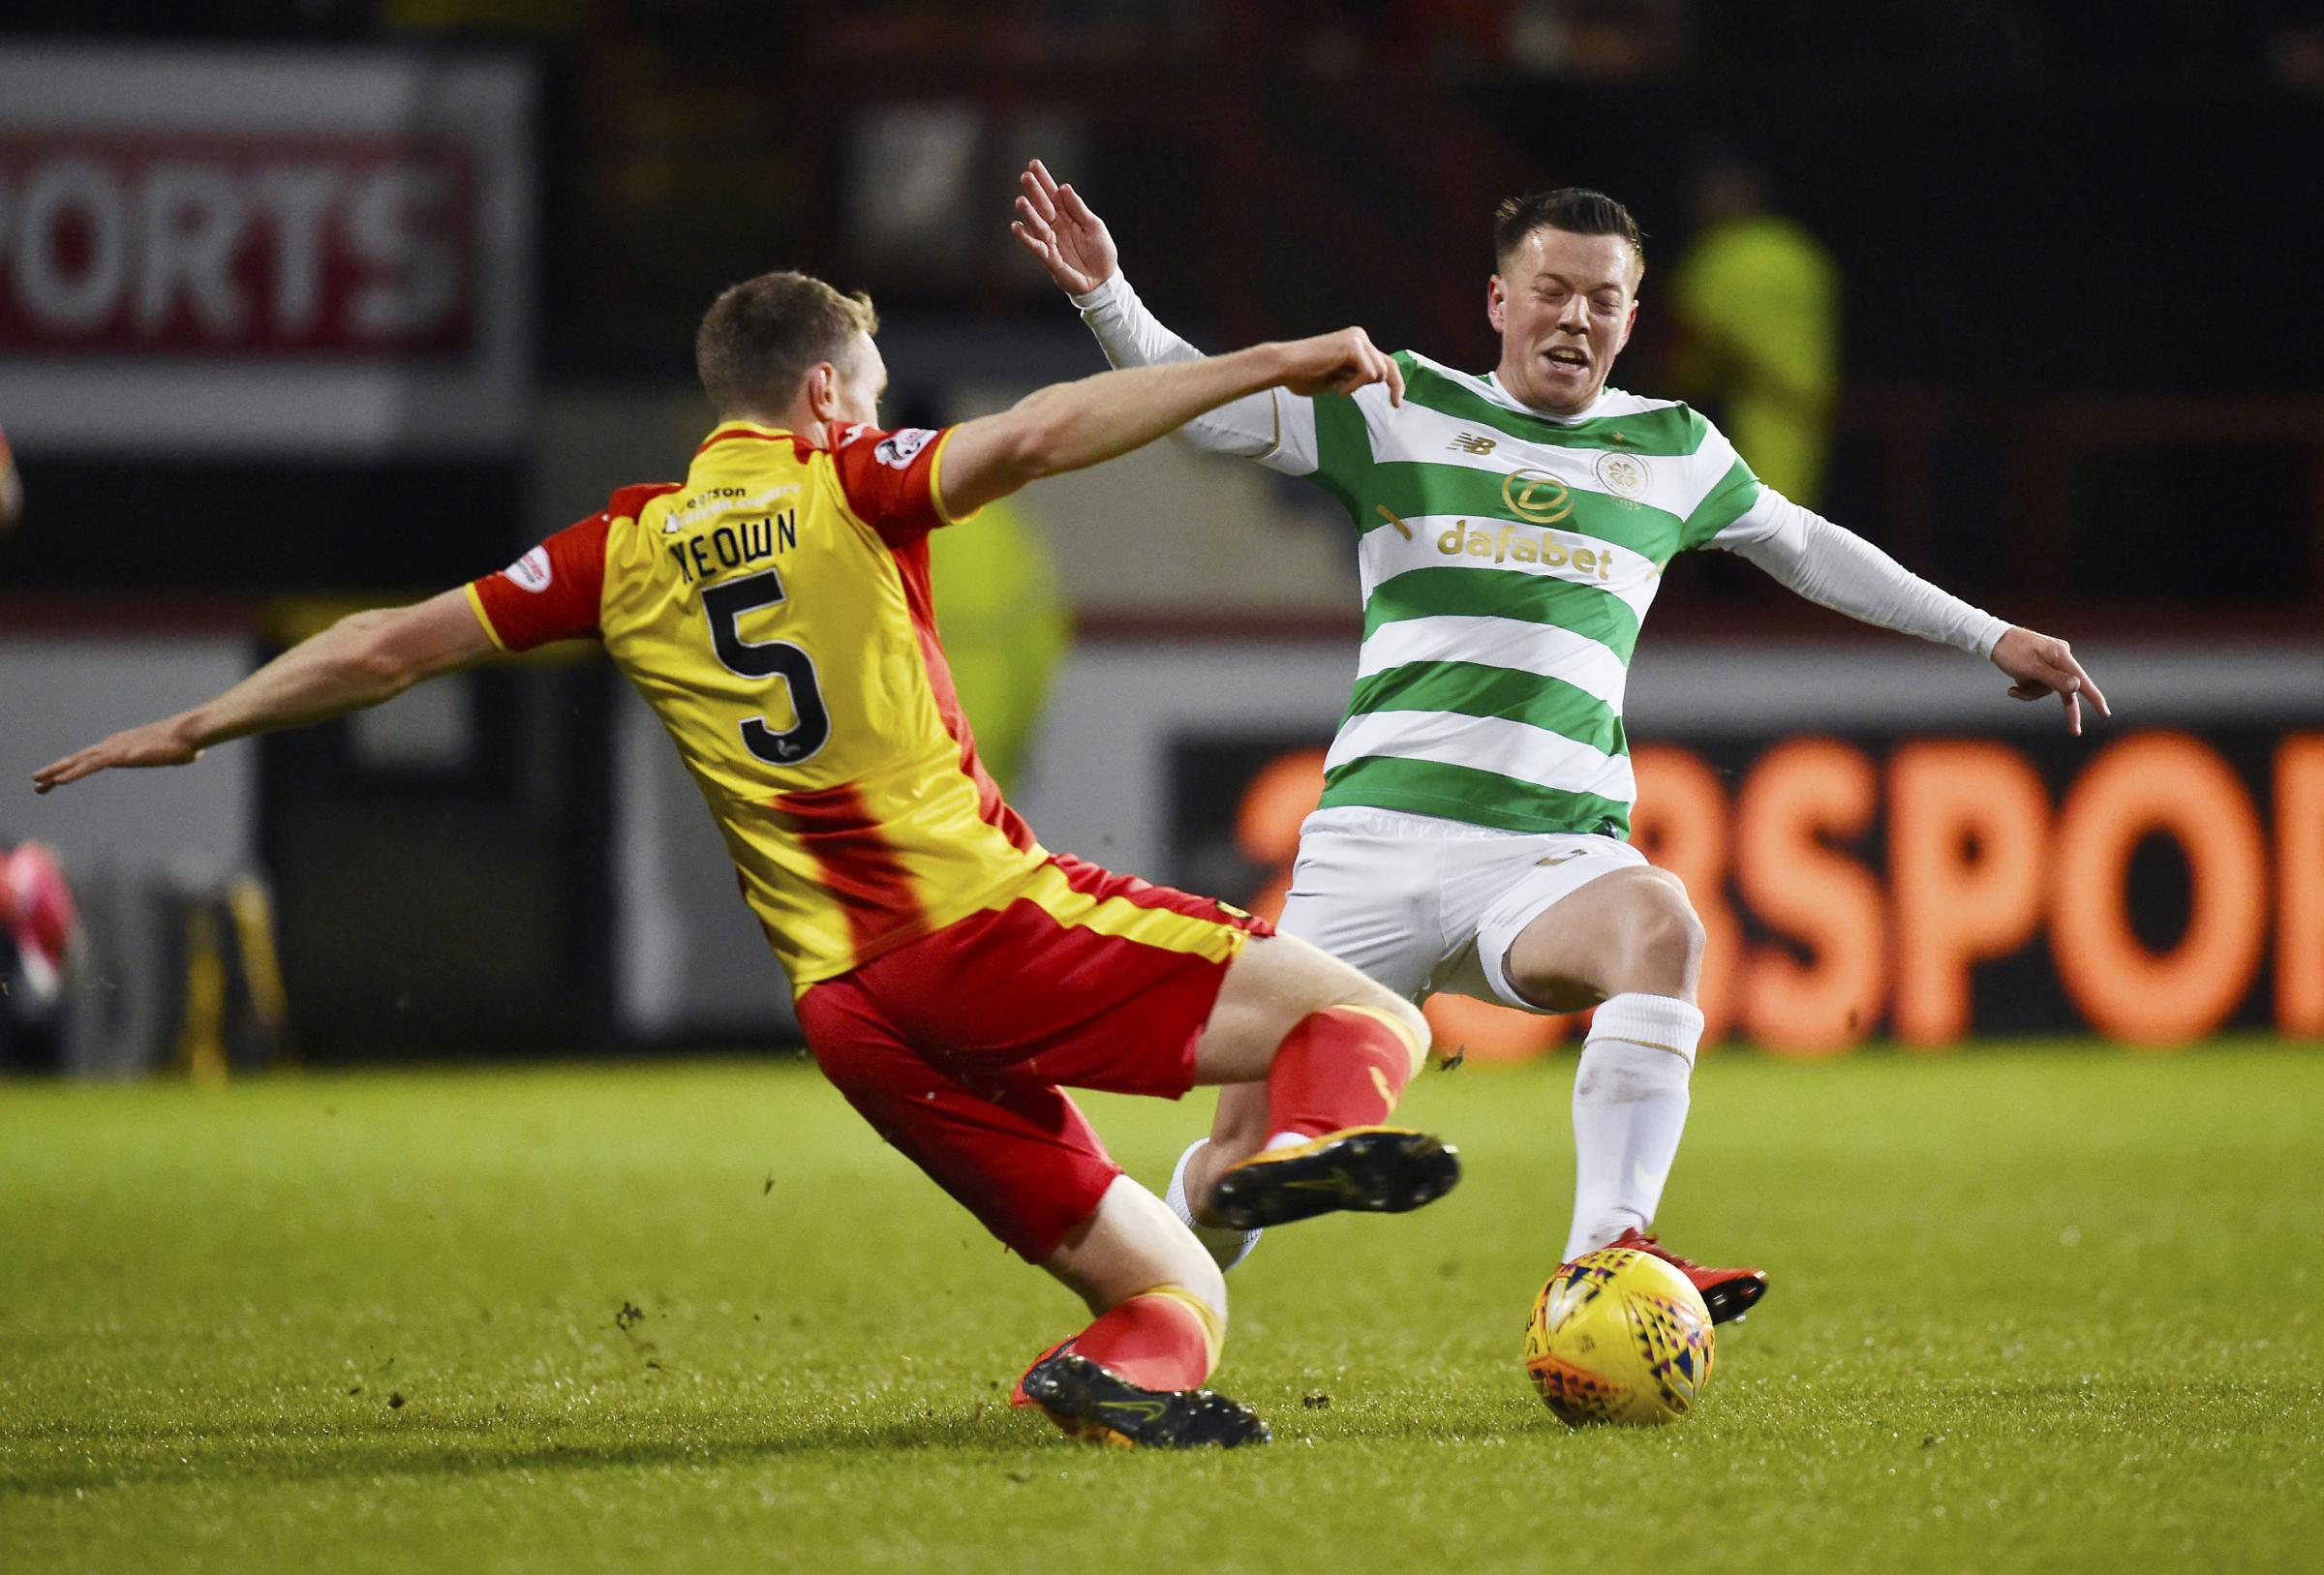 Celtic face Partick Thistle in the Scottish Cup on Saturday